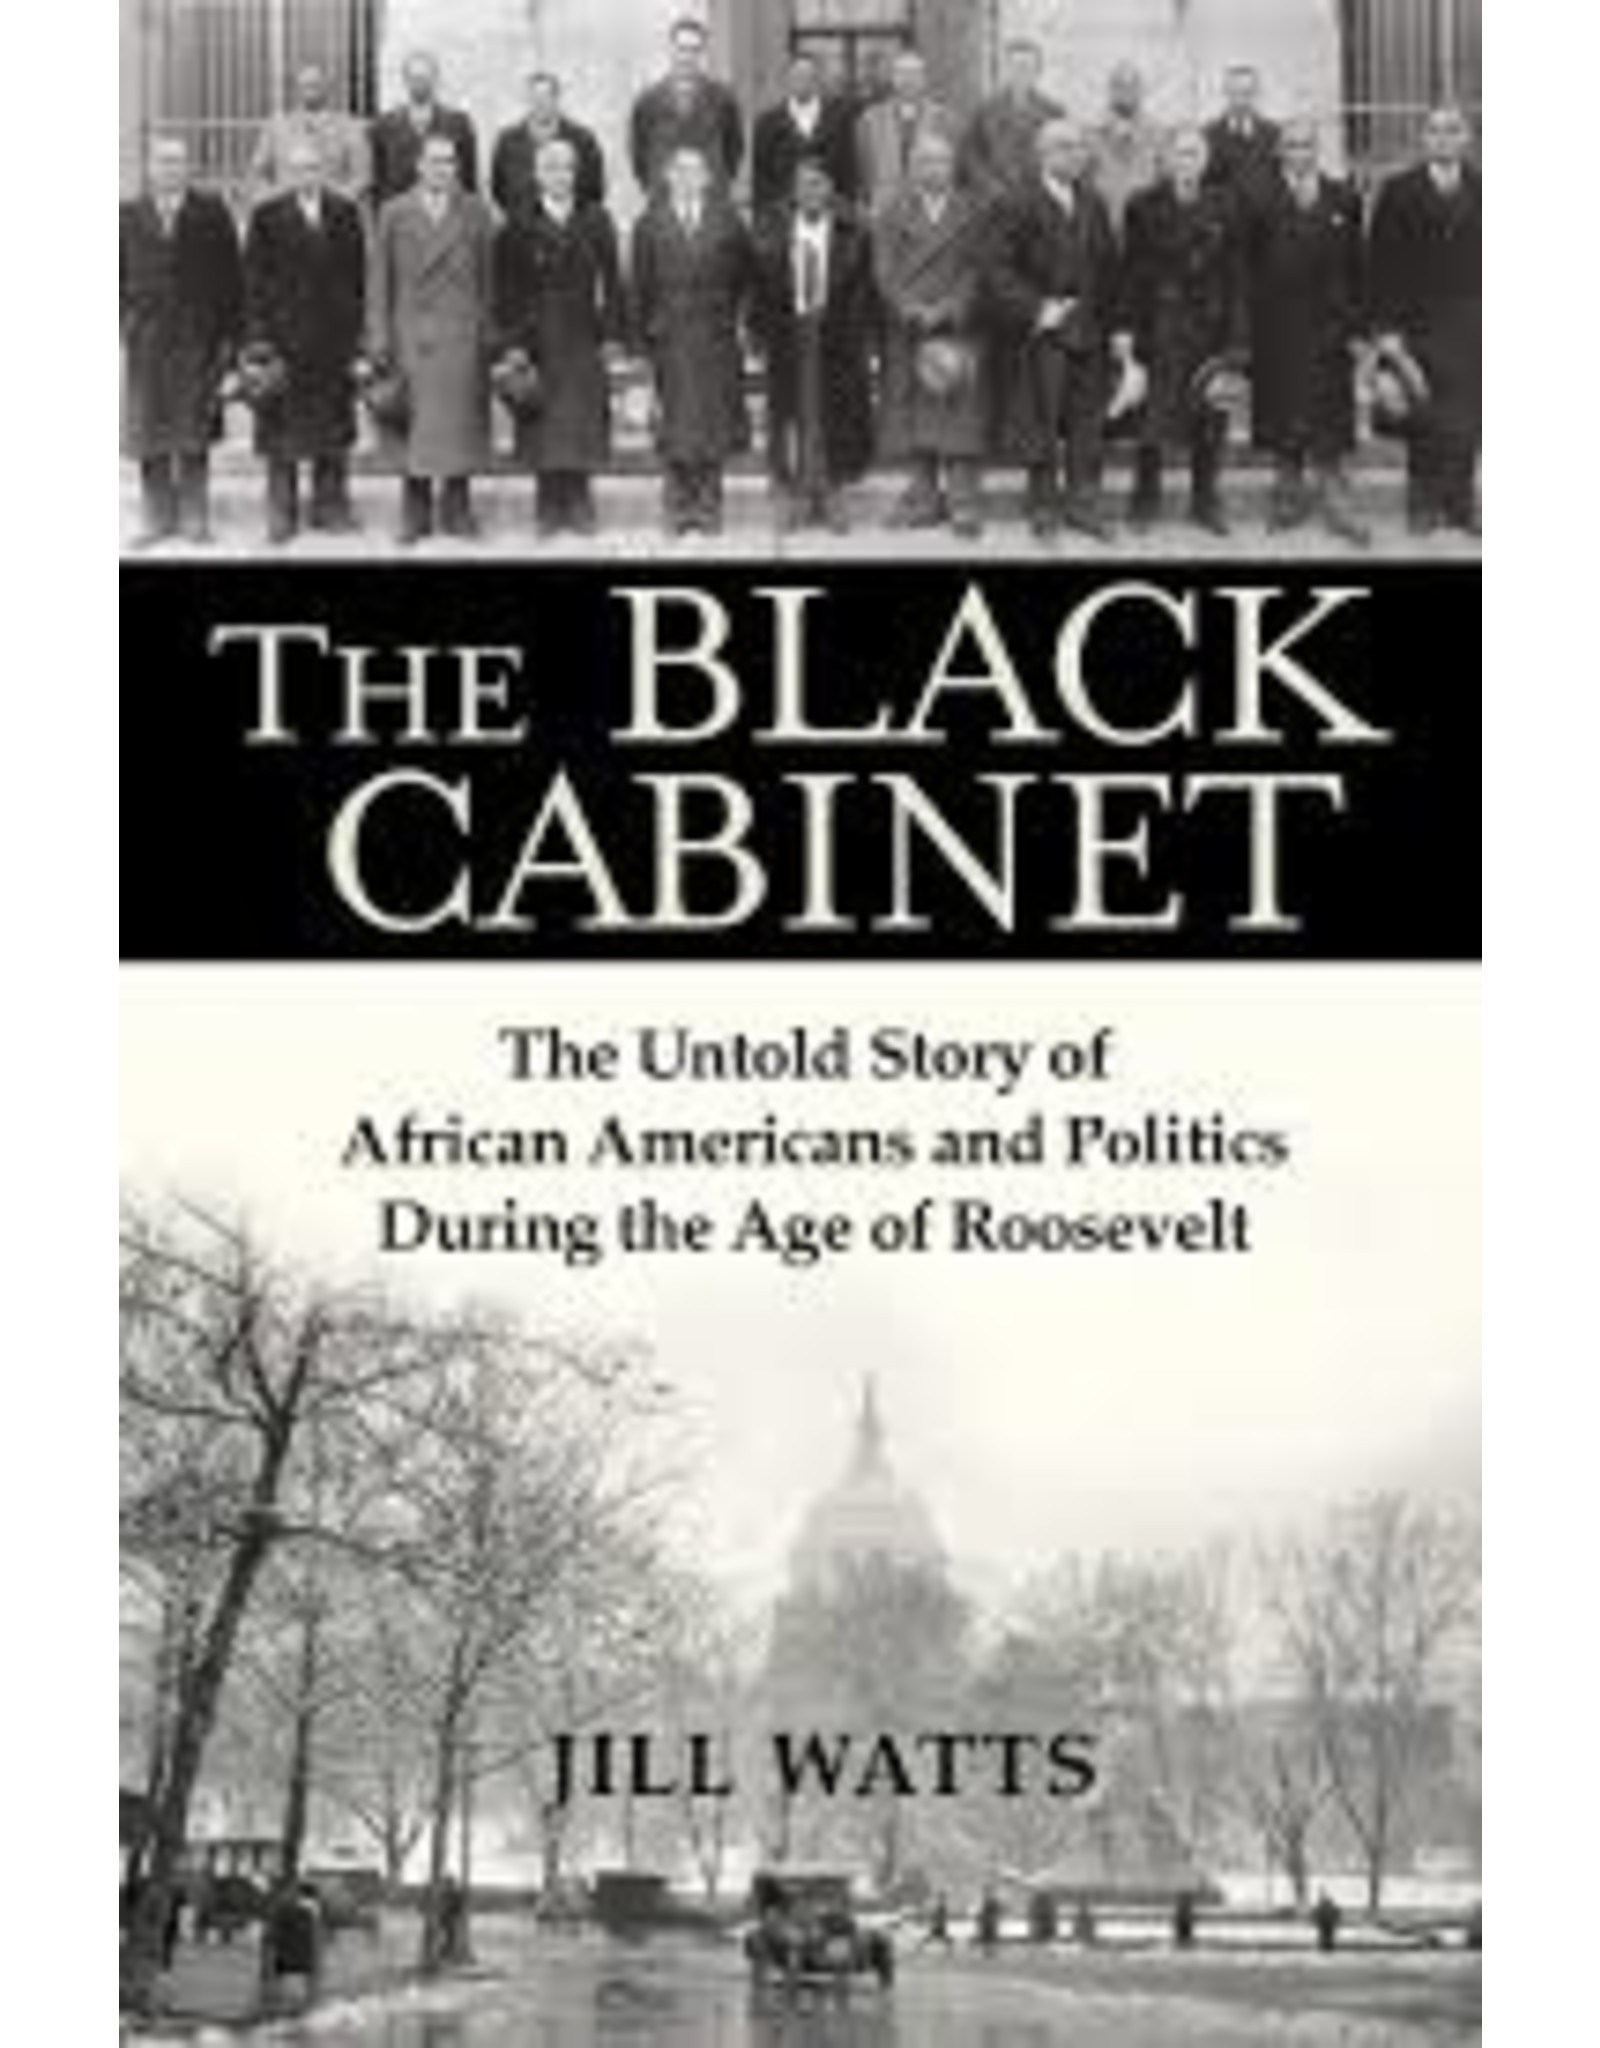 Books The Black Cabinet: The Untold Story of African Americans and Politics During the Roosevelt Age by Jill Watts